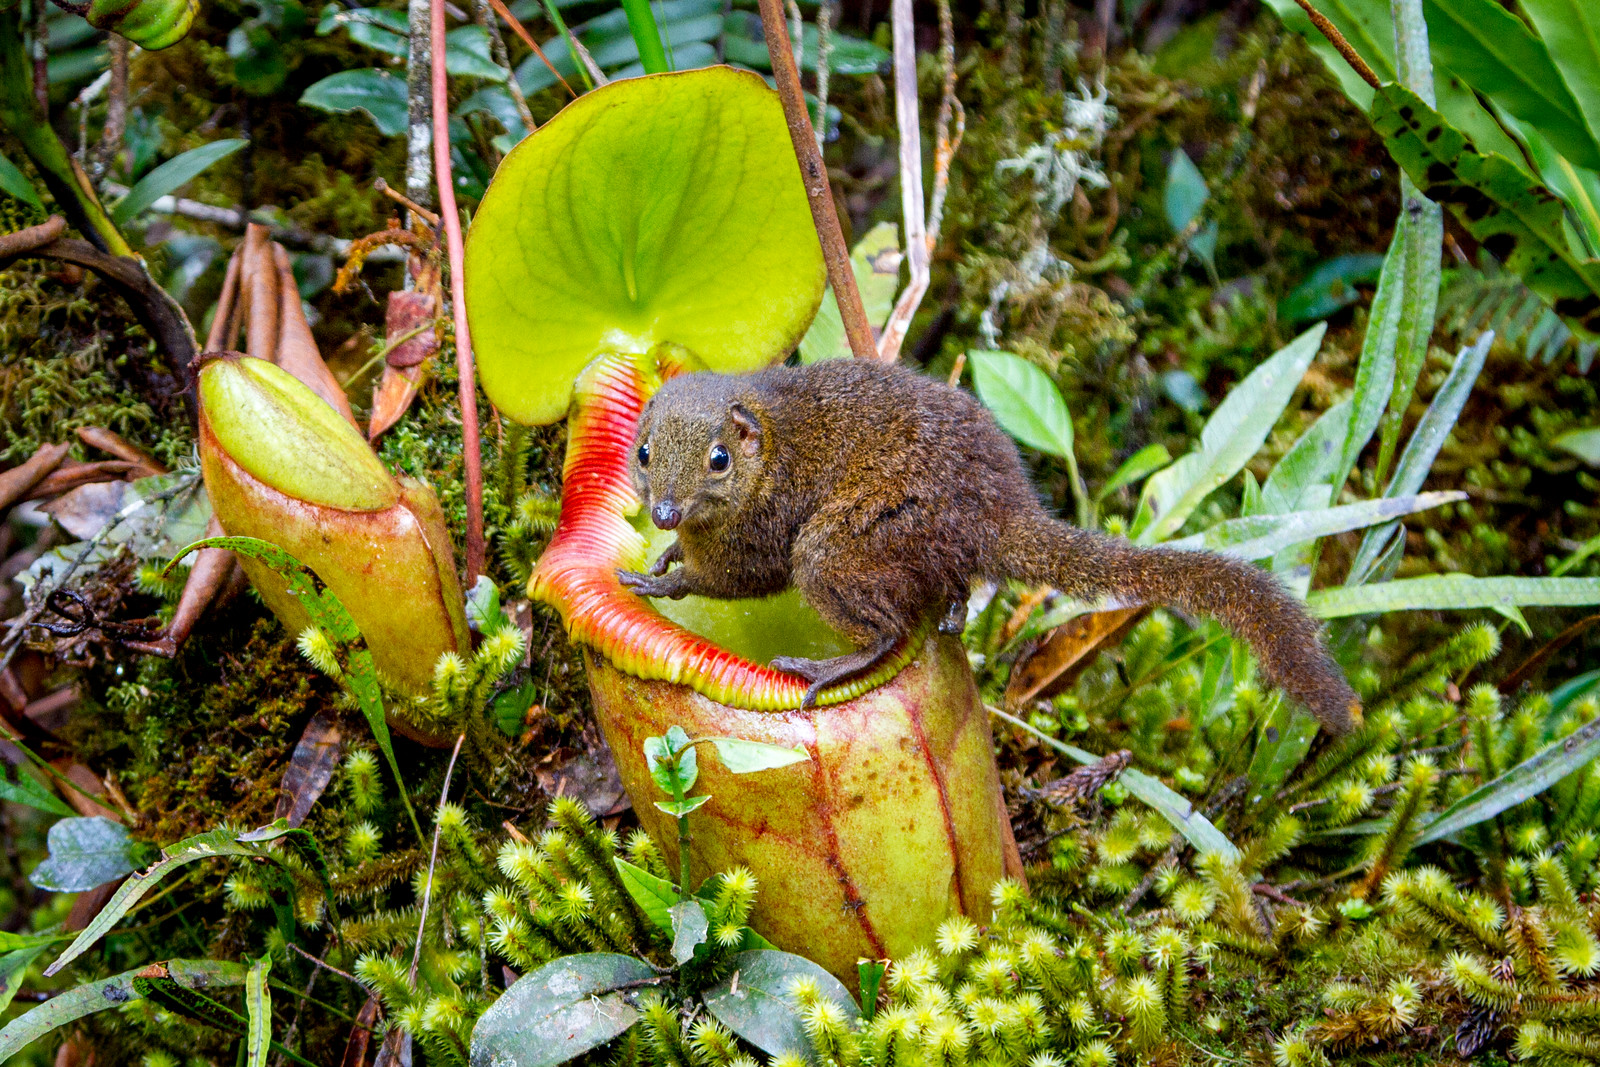 Caught in the act! Whilst filming on Mount Kinabalu in Borneo, I sat down opened a piece a chocolate and took a minute to admire the view. That's when a large shrew jumped up, grabbed my chocolate and ran off. It wasn't long before he was back for more, and  this was no ordinary shrew... It was the tree shrew that has a remarkable relationship with a giant carnivorous pitcher plant! We had discovered that here they were habituated, allowing us to to film this astonishing behaviour in detail for the first time. It was once believed that the pitchers sweet nectar attracted the shrews, and upon climbing onto the rim they would slip into the plants digestive juices. The truth is more bizarre - instead of being eaten the shrew uses the pitcher as a toilet and leaves a nitrogen rich deposit of poo as payment. Perfect fertiliser that the plants need to survive on these rain washed slopes. #BBCEarth #EarthOnLocation #Toilet #Shrew #Pitcher #Borneo #Plant #Poo #Mountain #Filming #Wildlife